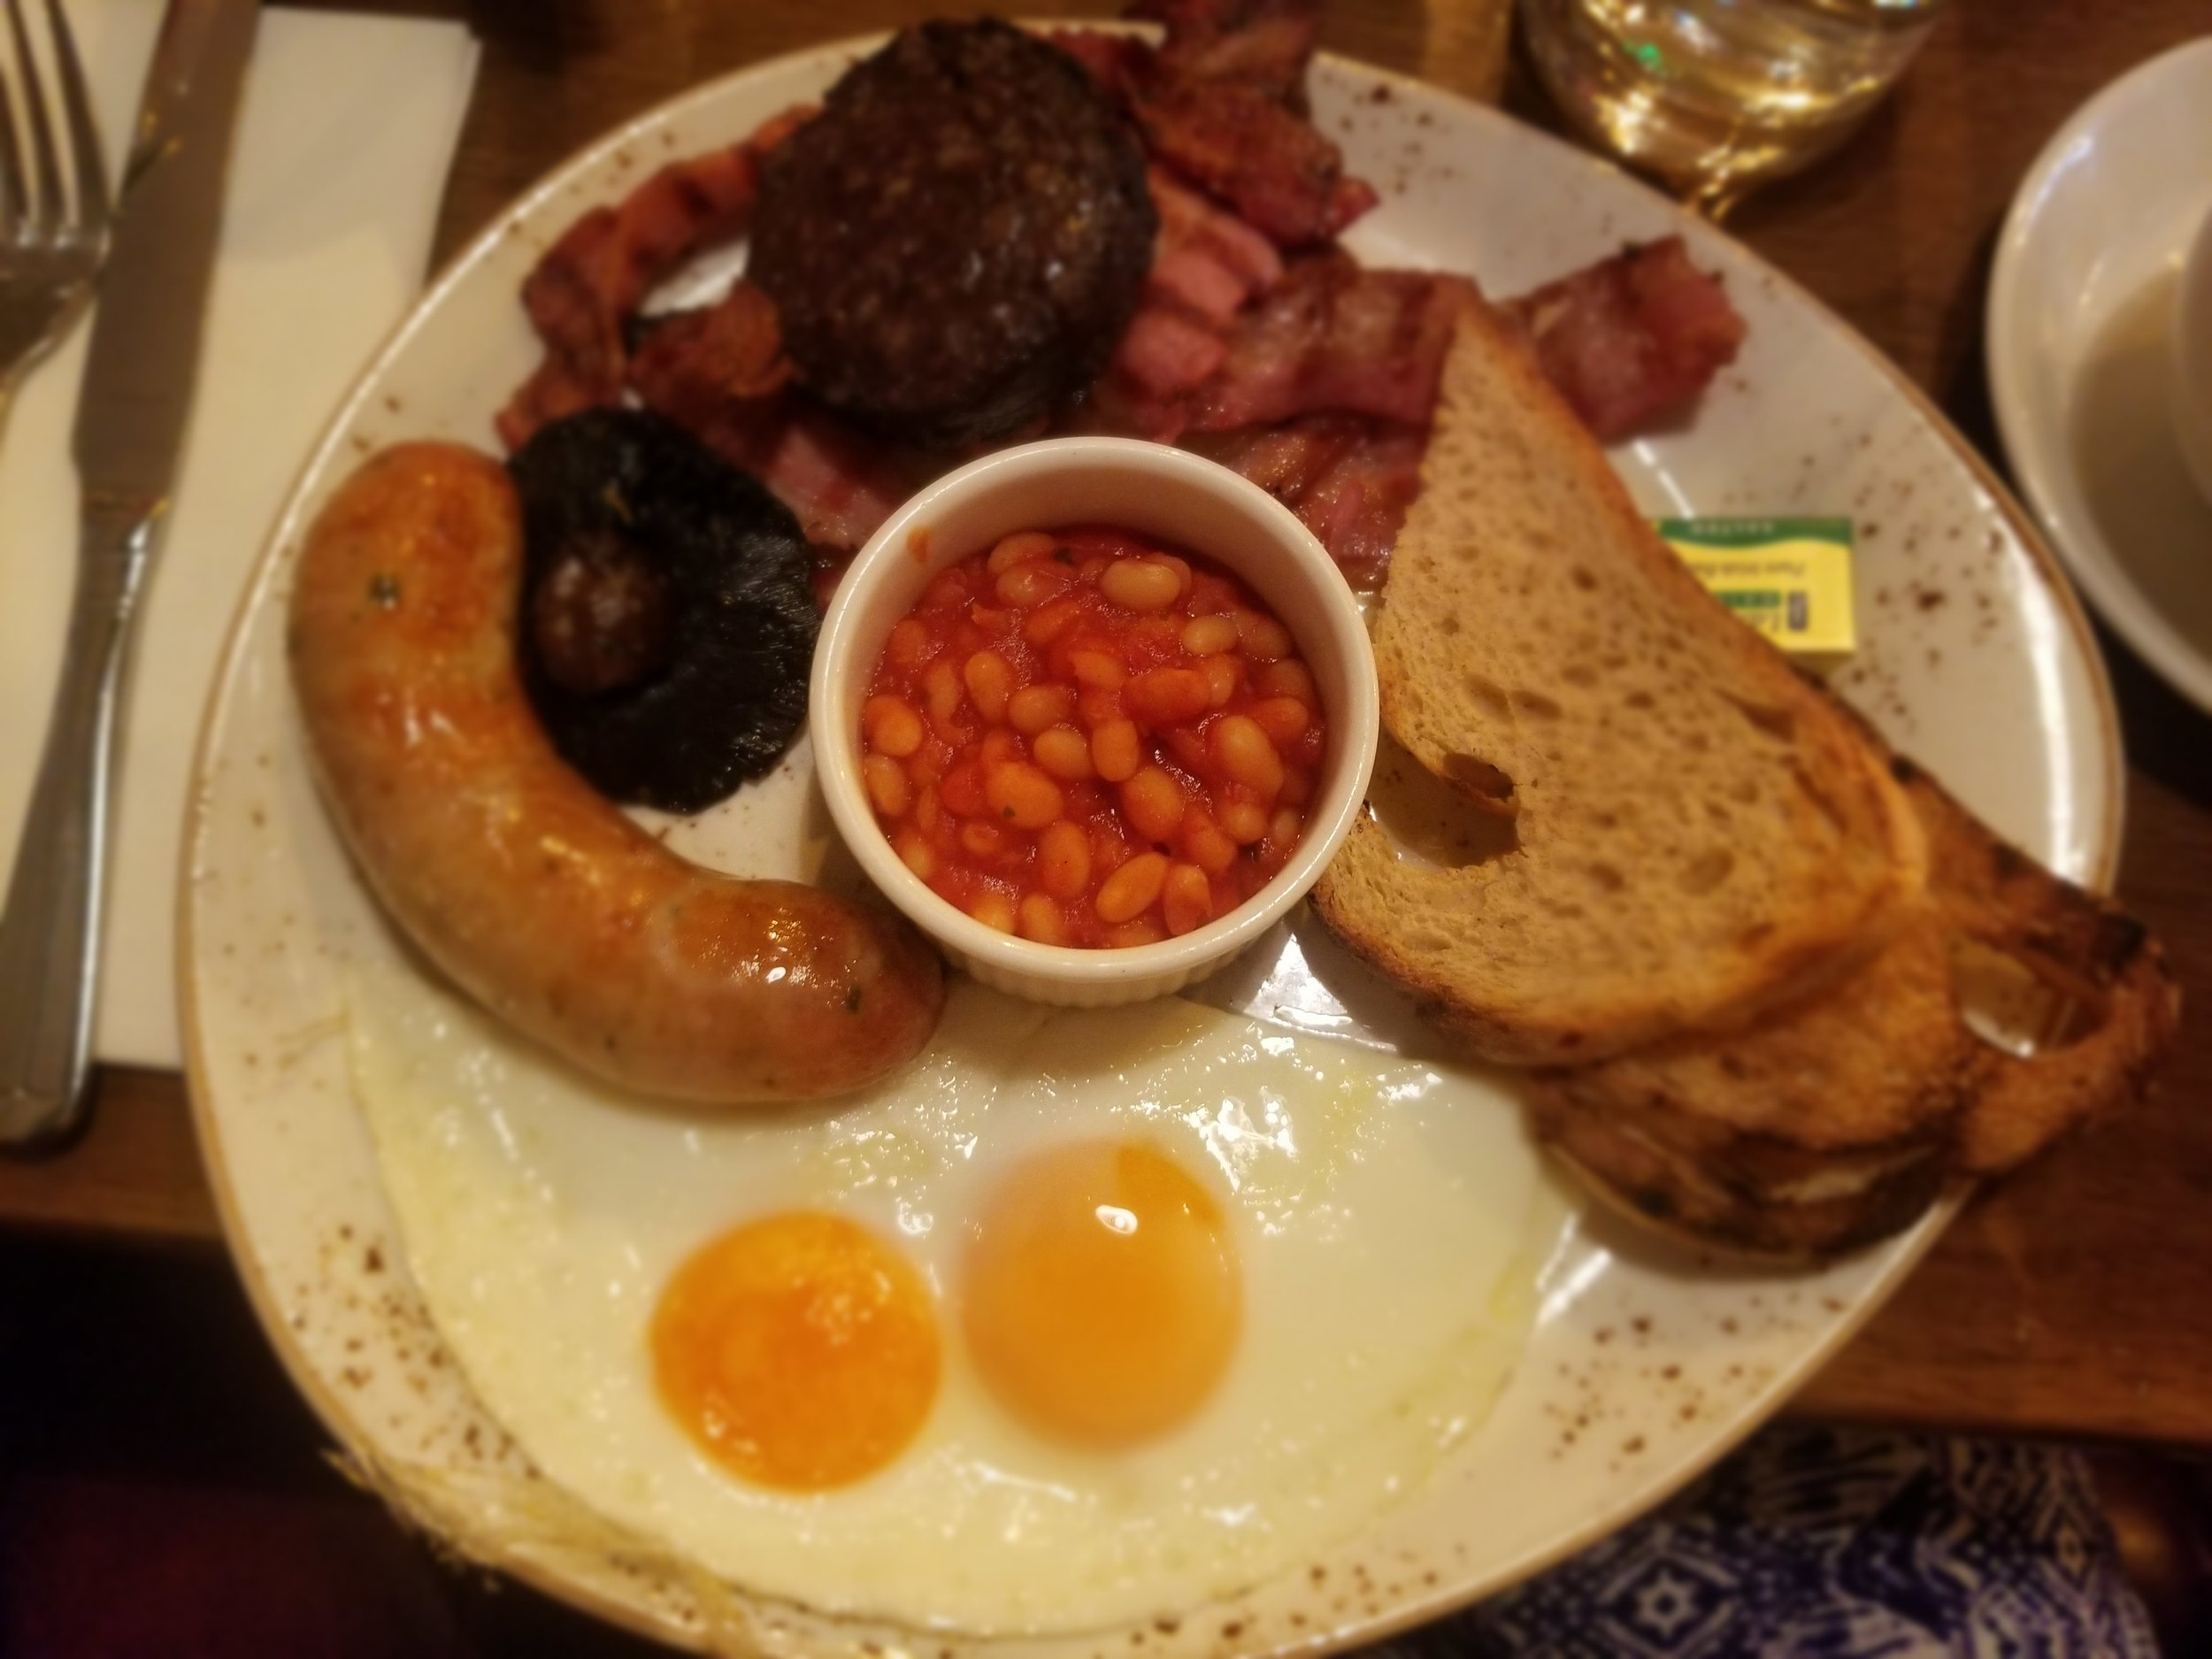 A fry-up, or full Irish breakfast, was also a must. English beans, sausage, egg, black pudding, Irish bacon, and toast makes for a pretty filling breakfast, so I highly recommend doing this on a day that you don't have to be running around immediately after. Photo credit: Morrill, 2019